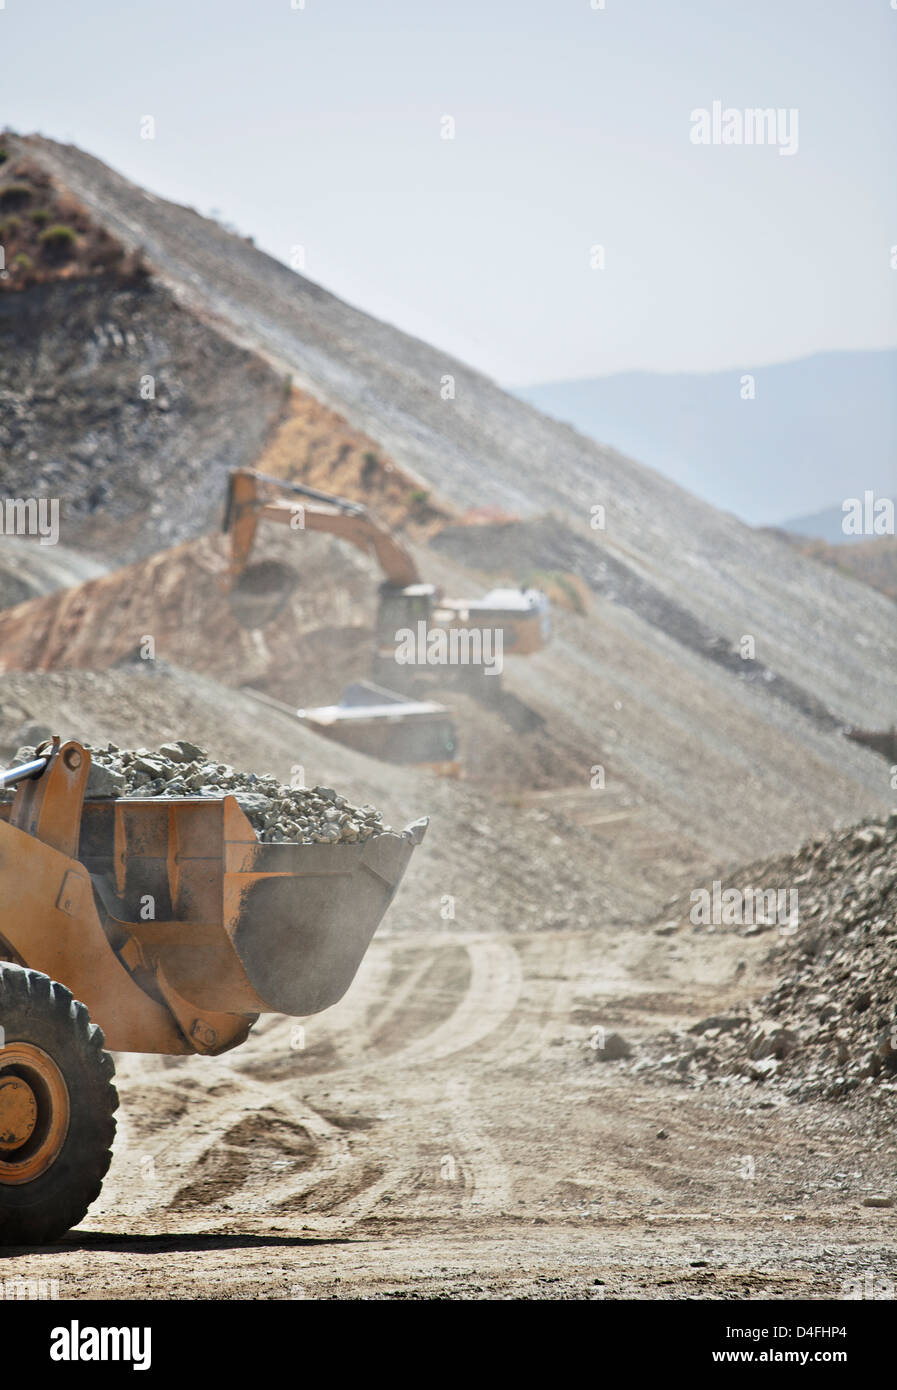 Diggers working in quarry - Stock Image